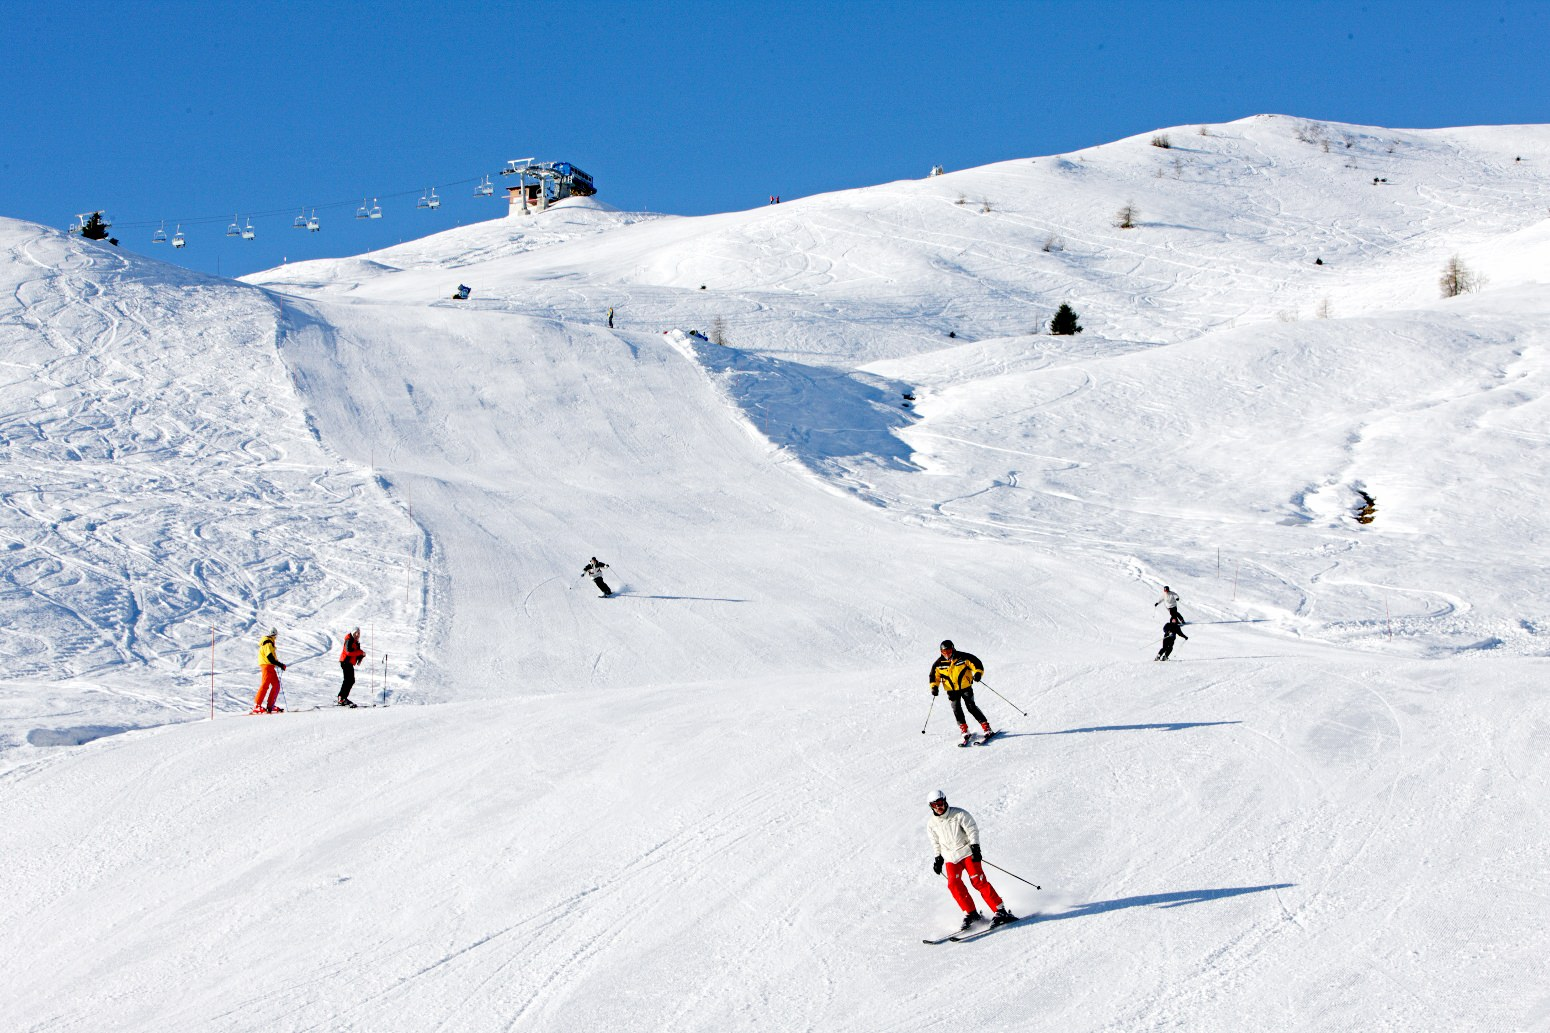 group_ski_holiday_Italy.jpg